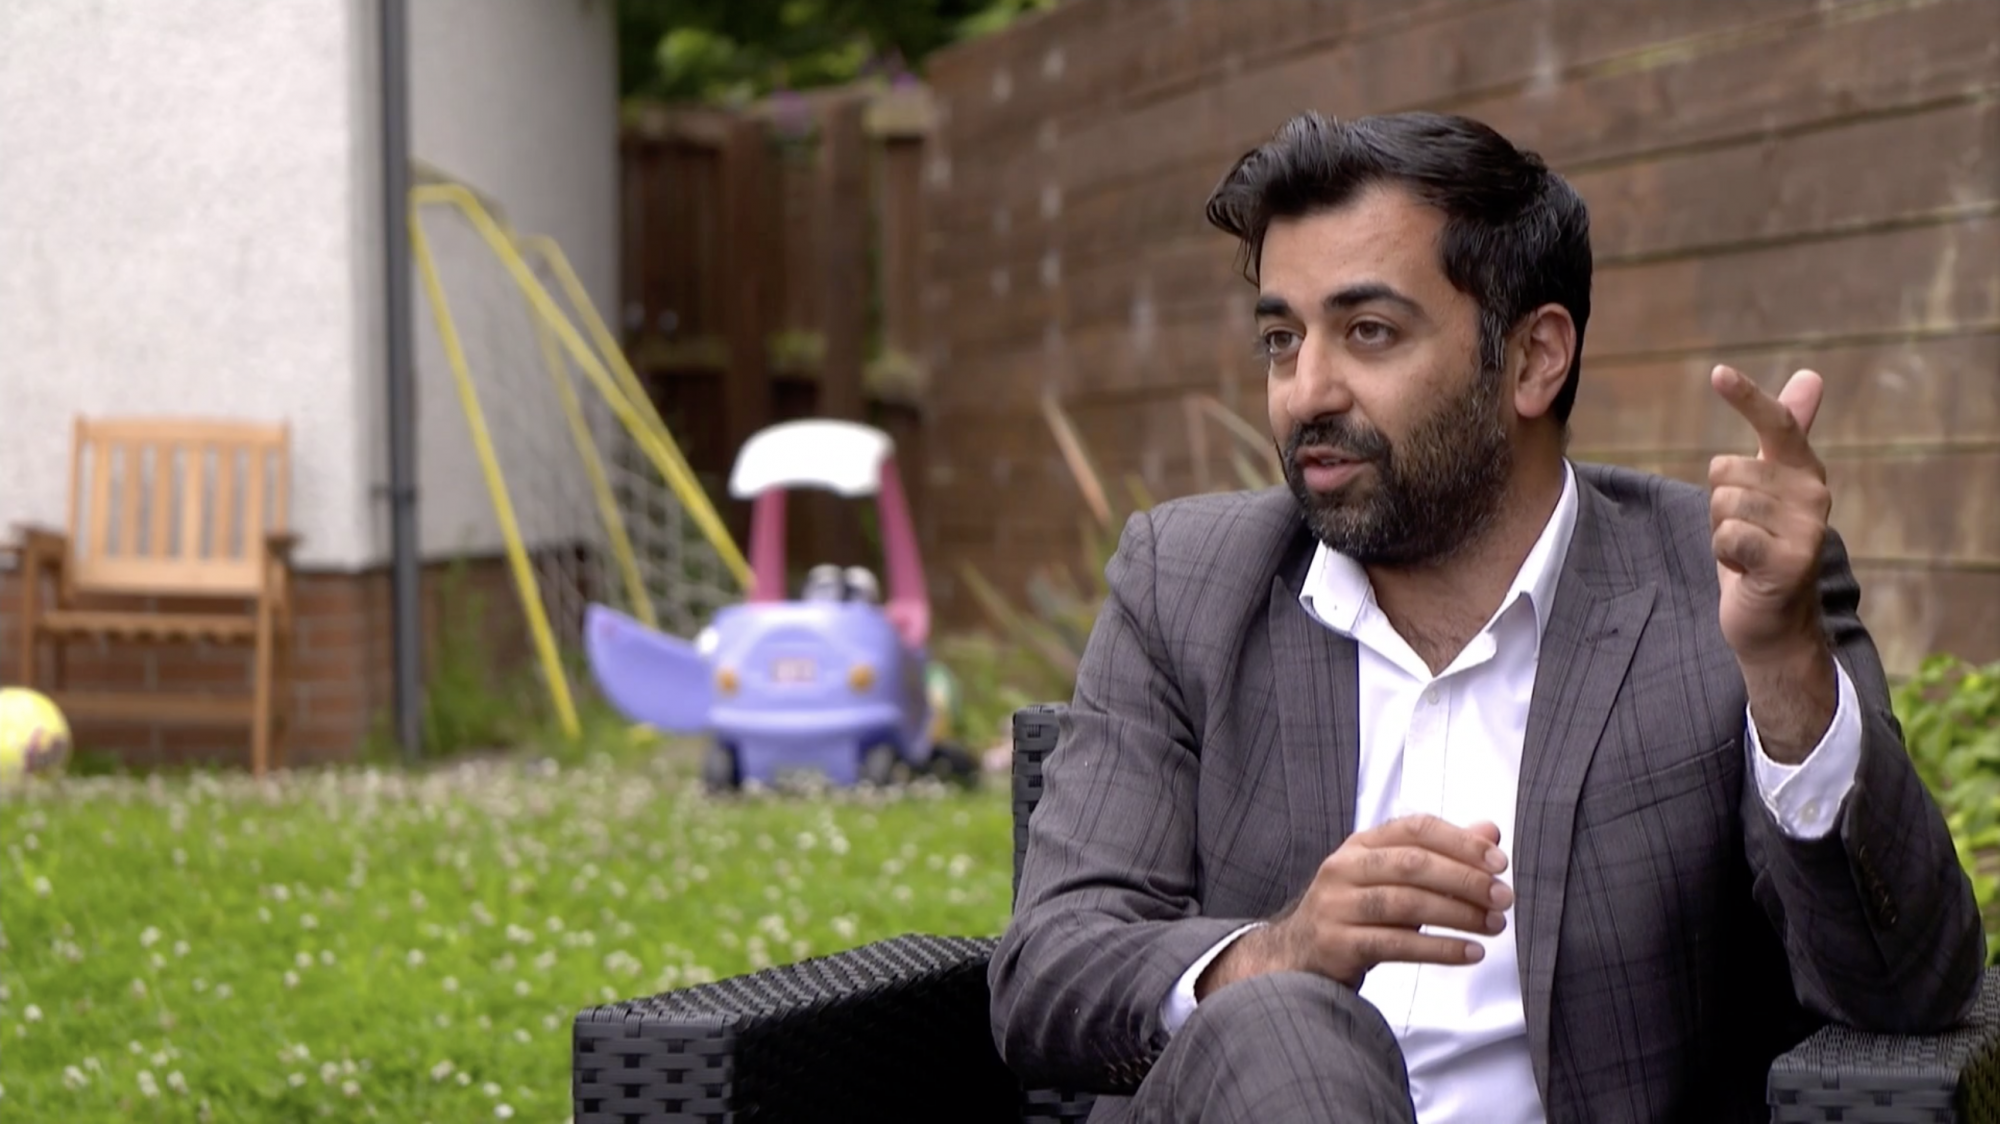 Scottish minister Humza Yousaf claims nursery discriminated against daughter - channel 4